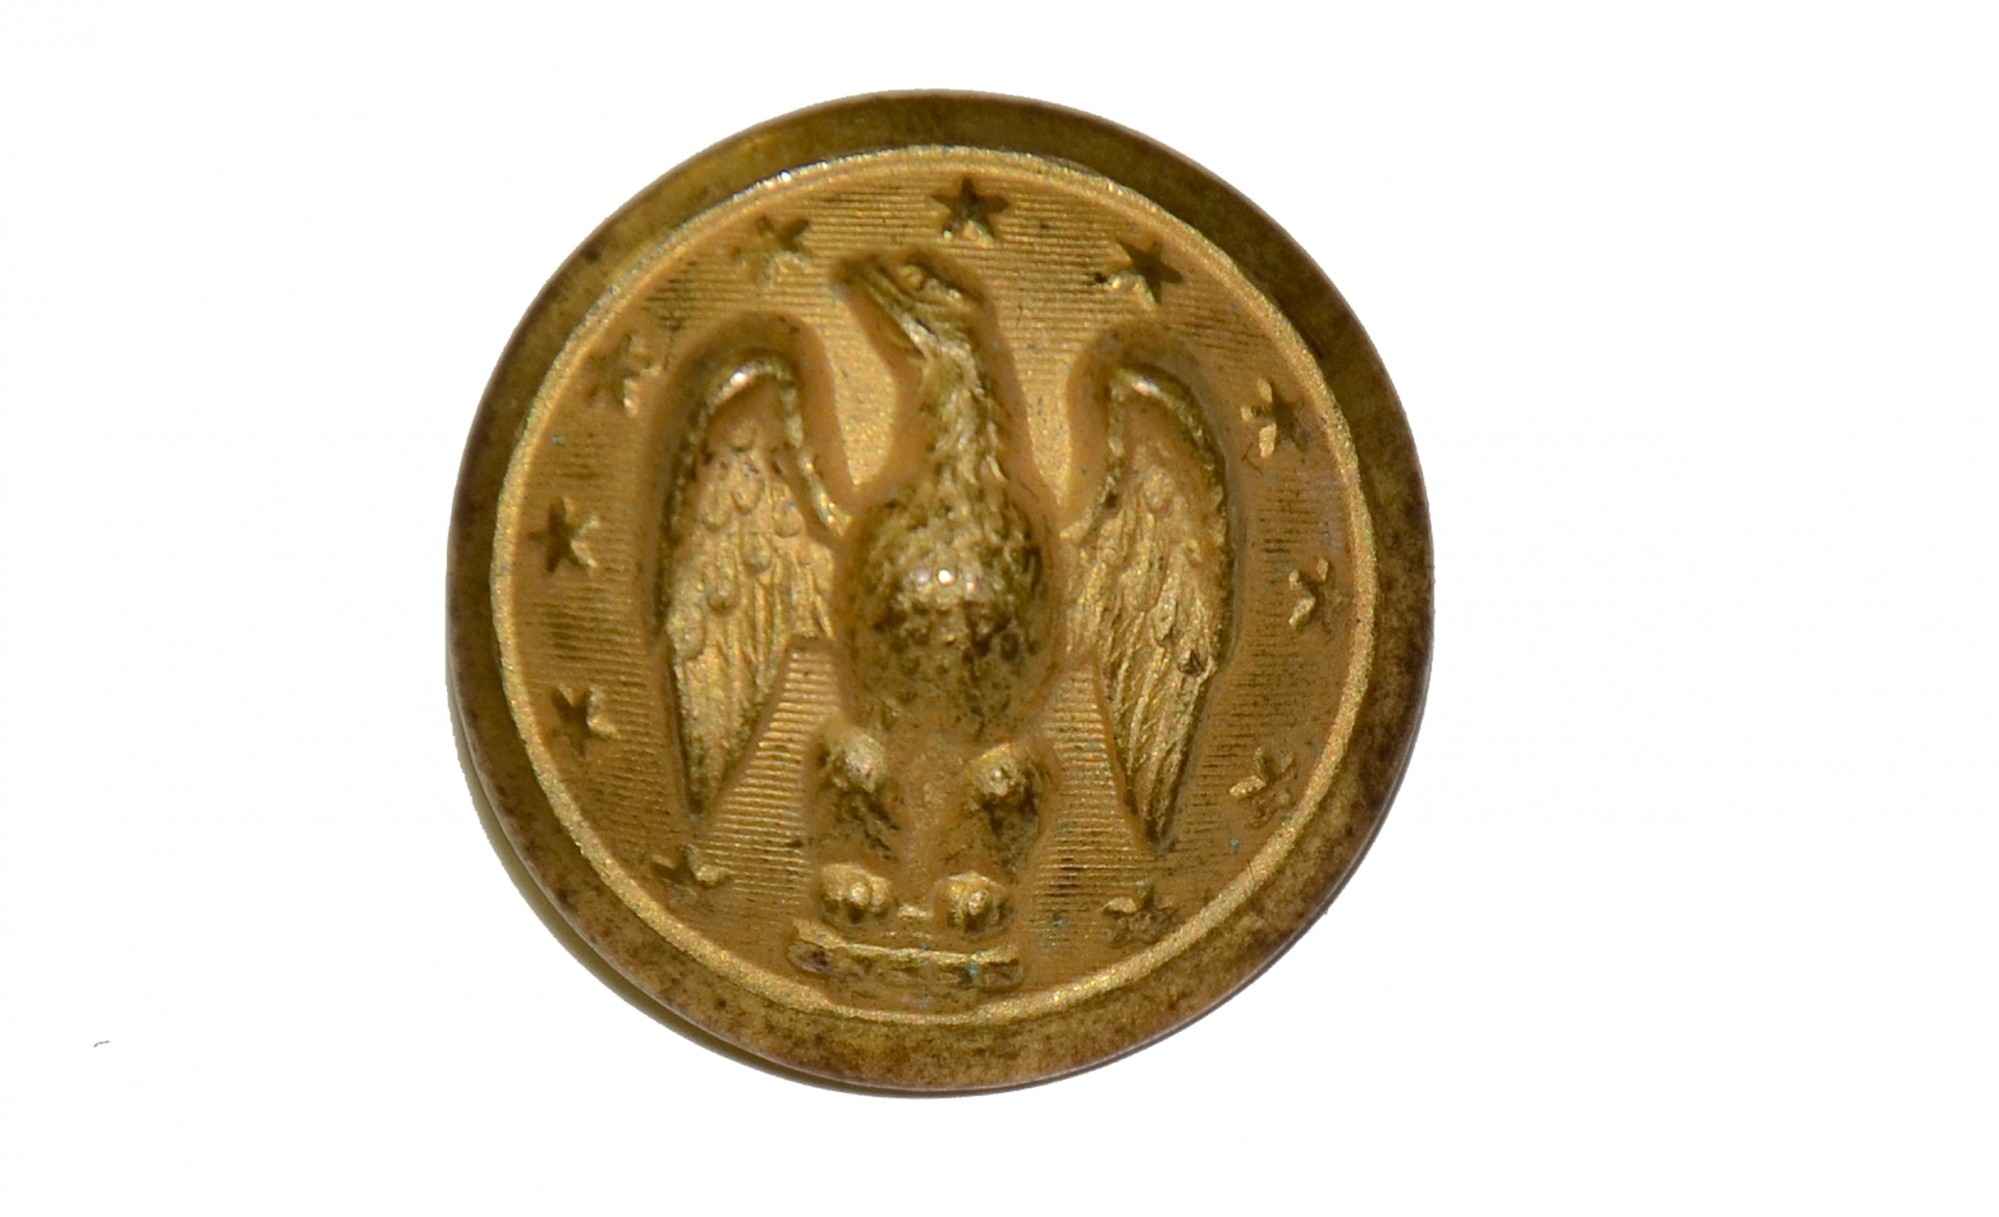 CONFEDERATE STAFF OFFICER'S BUTTON